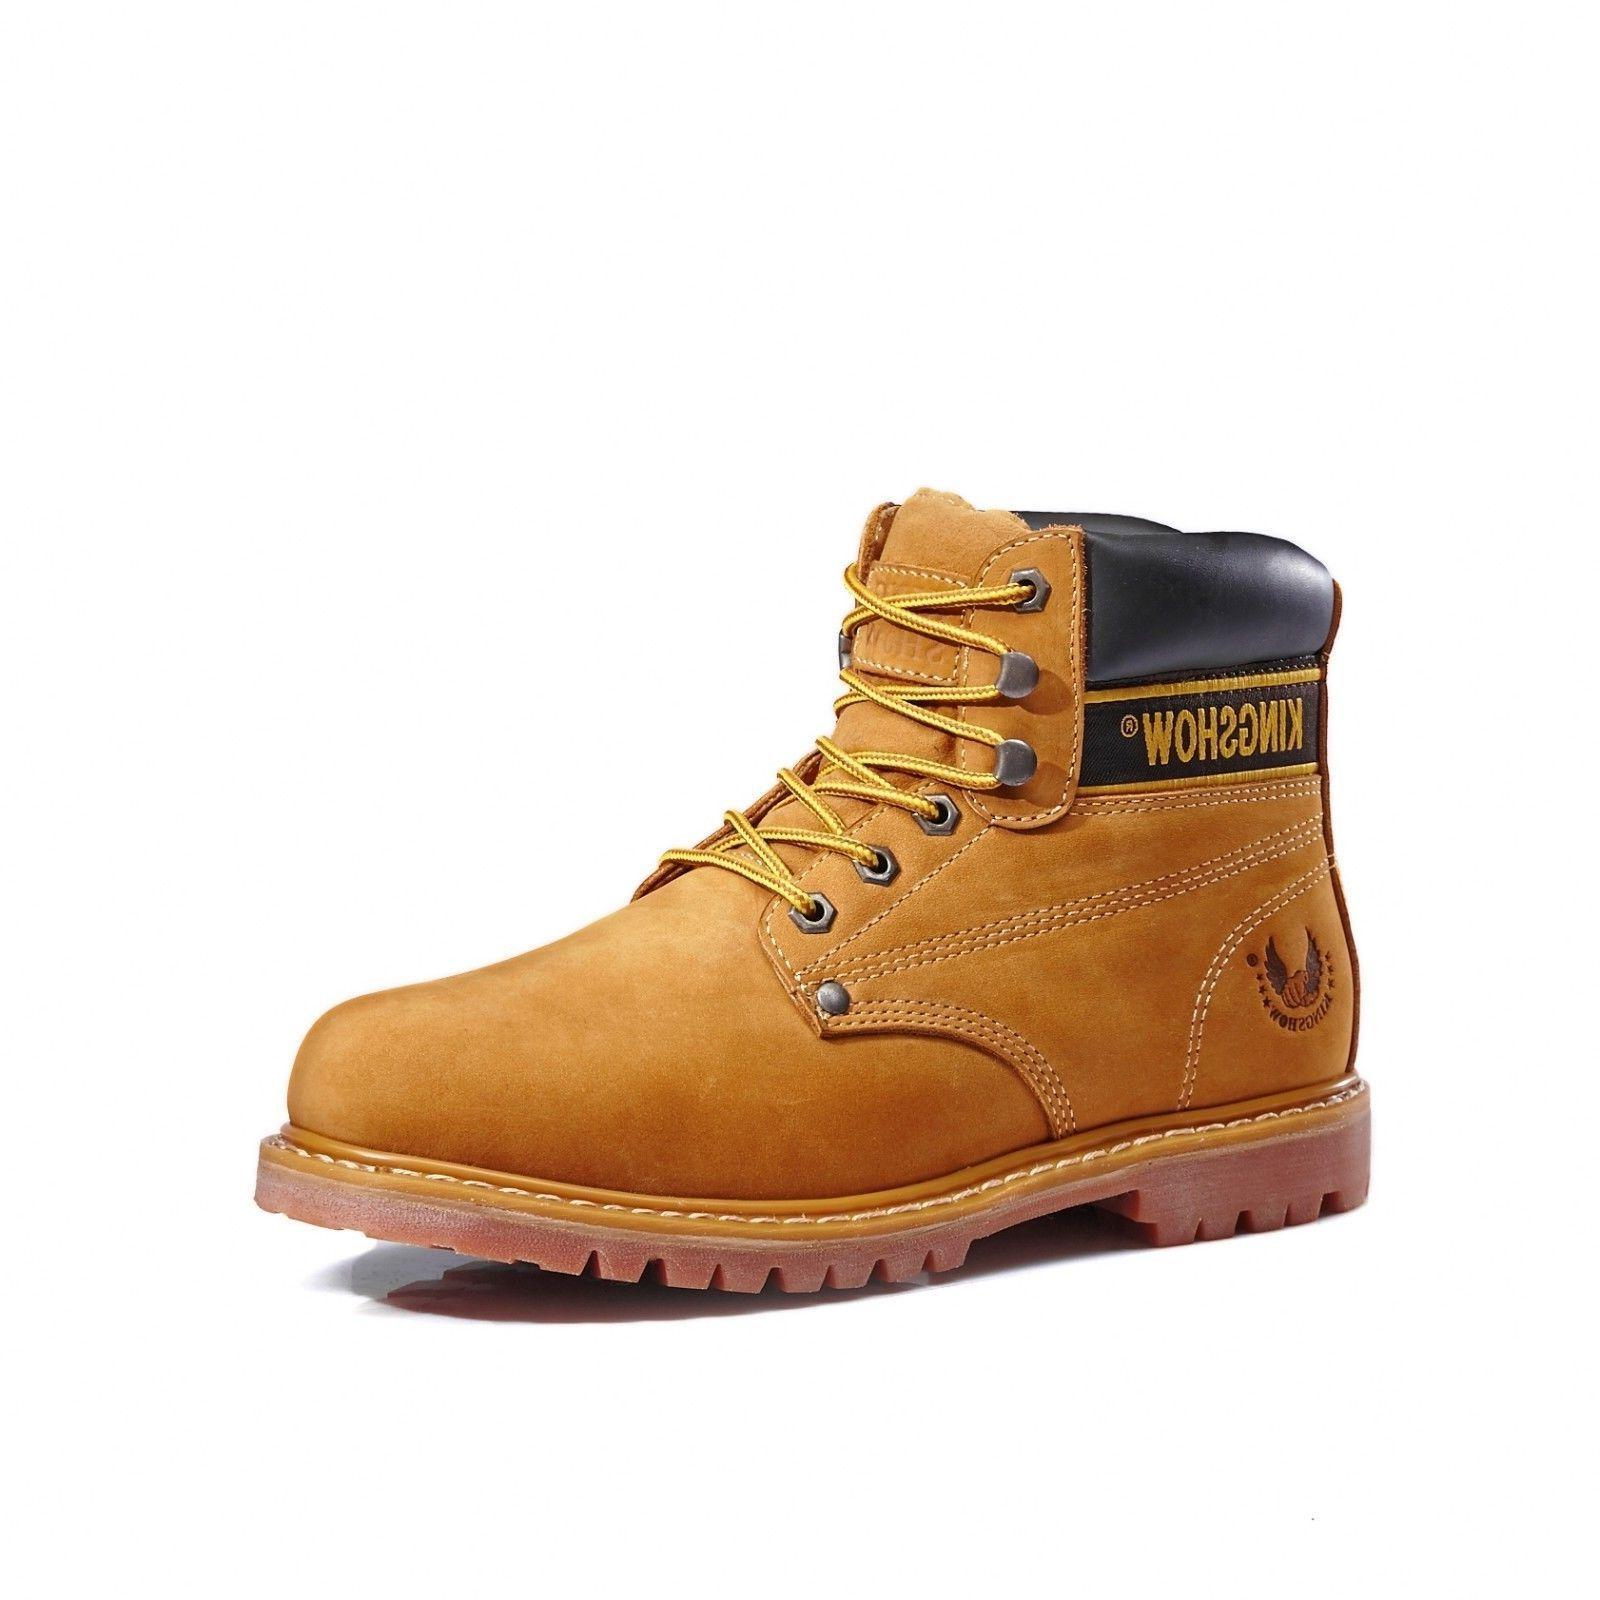 Mens Boots Shoes Leather Waterproof